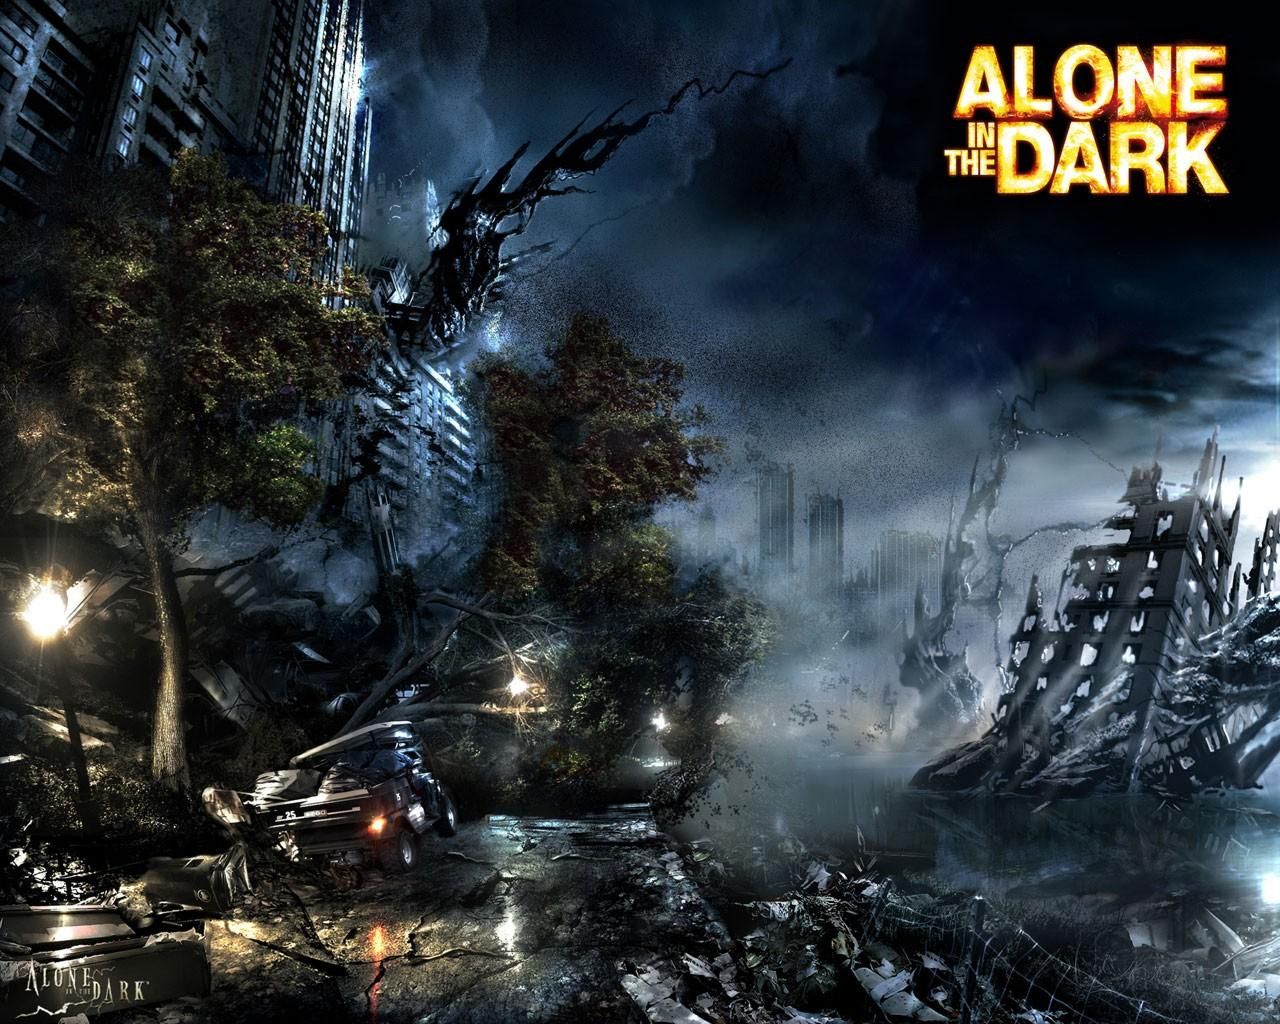 Alone in the Dark Wallpapers   Games Wallpapers 1 1280x1024